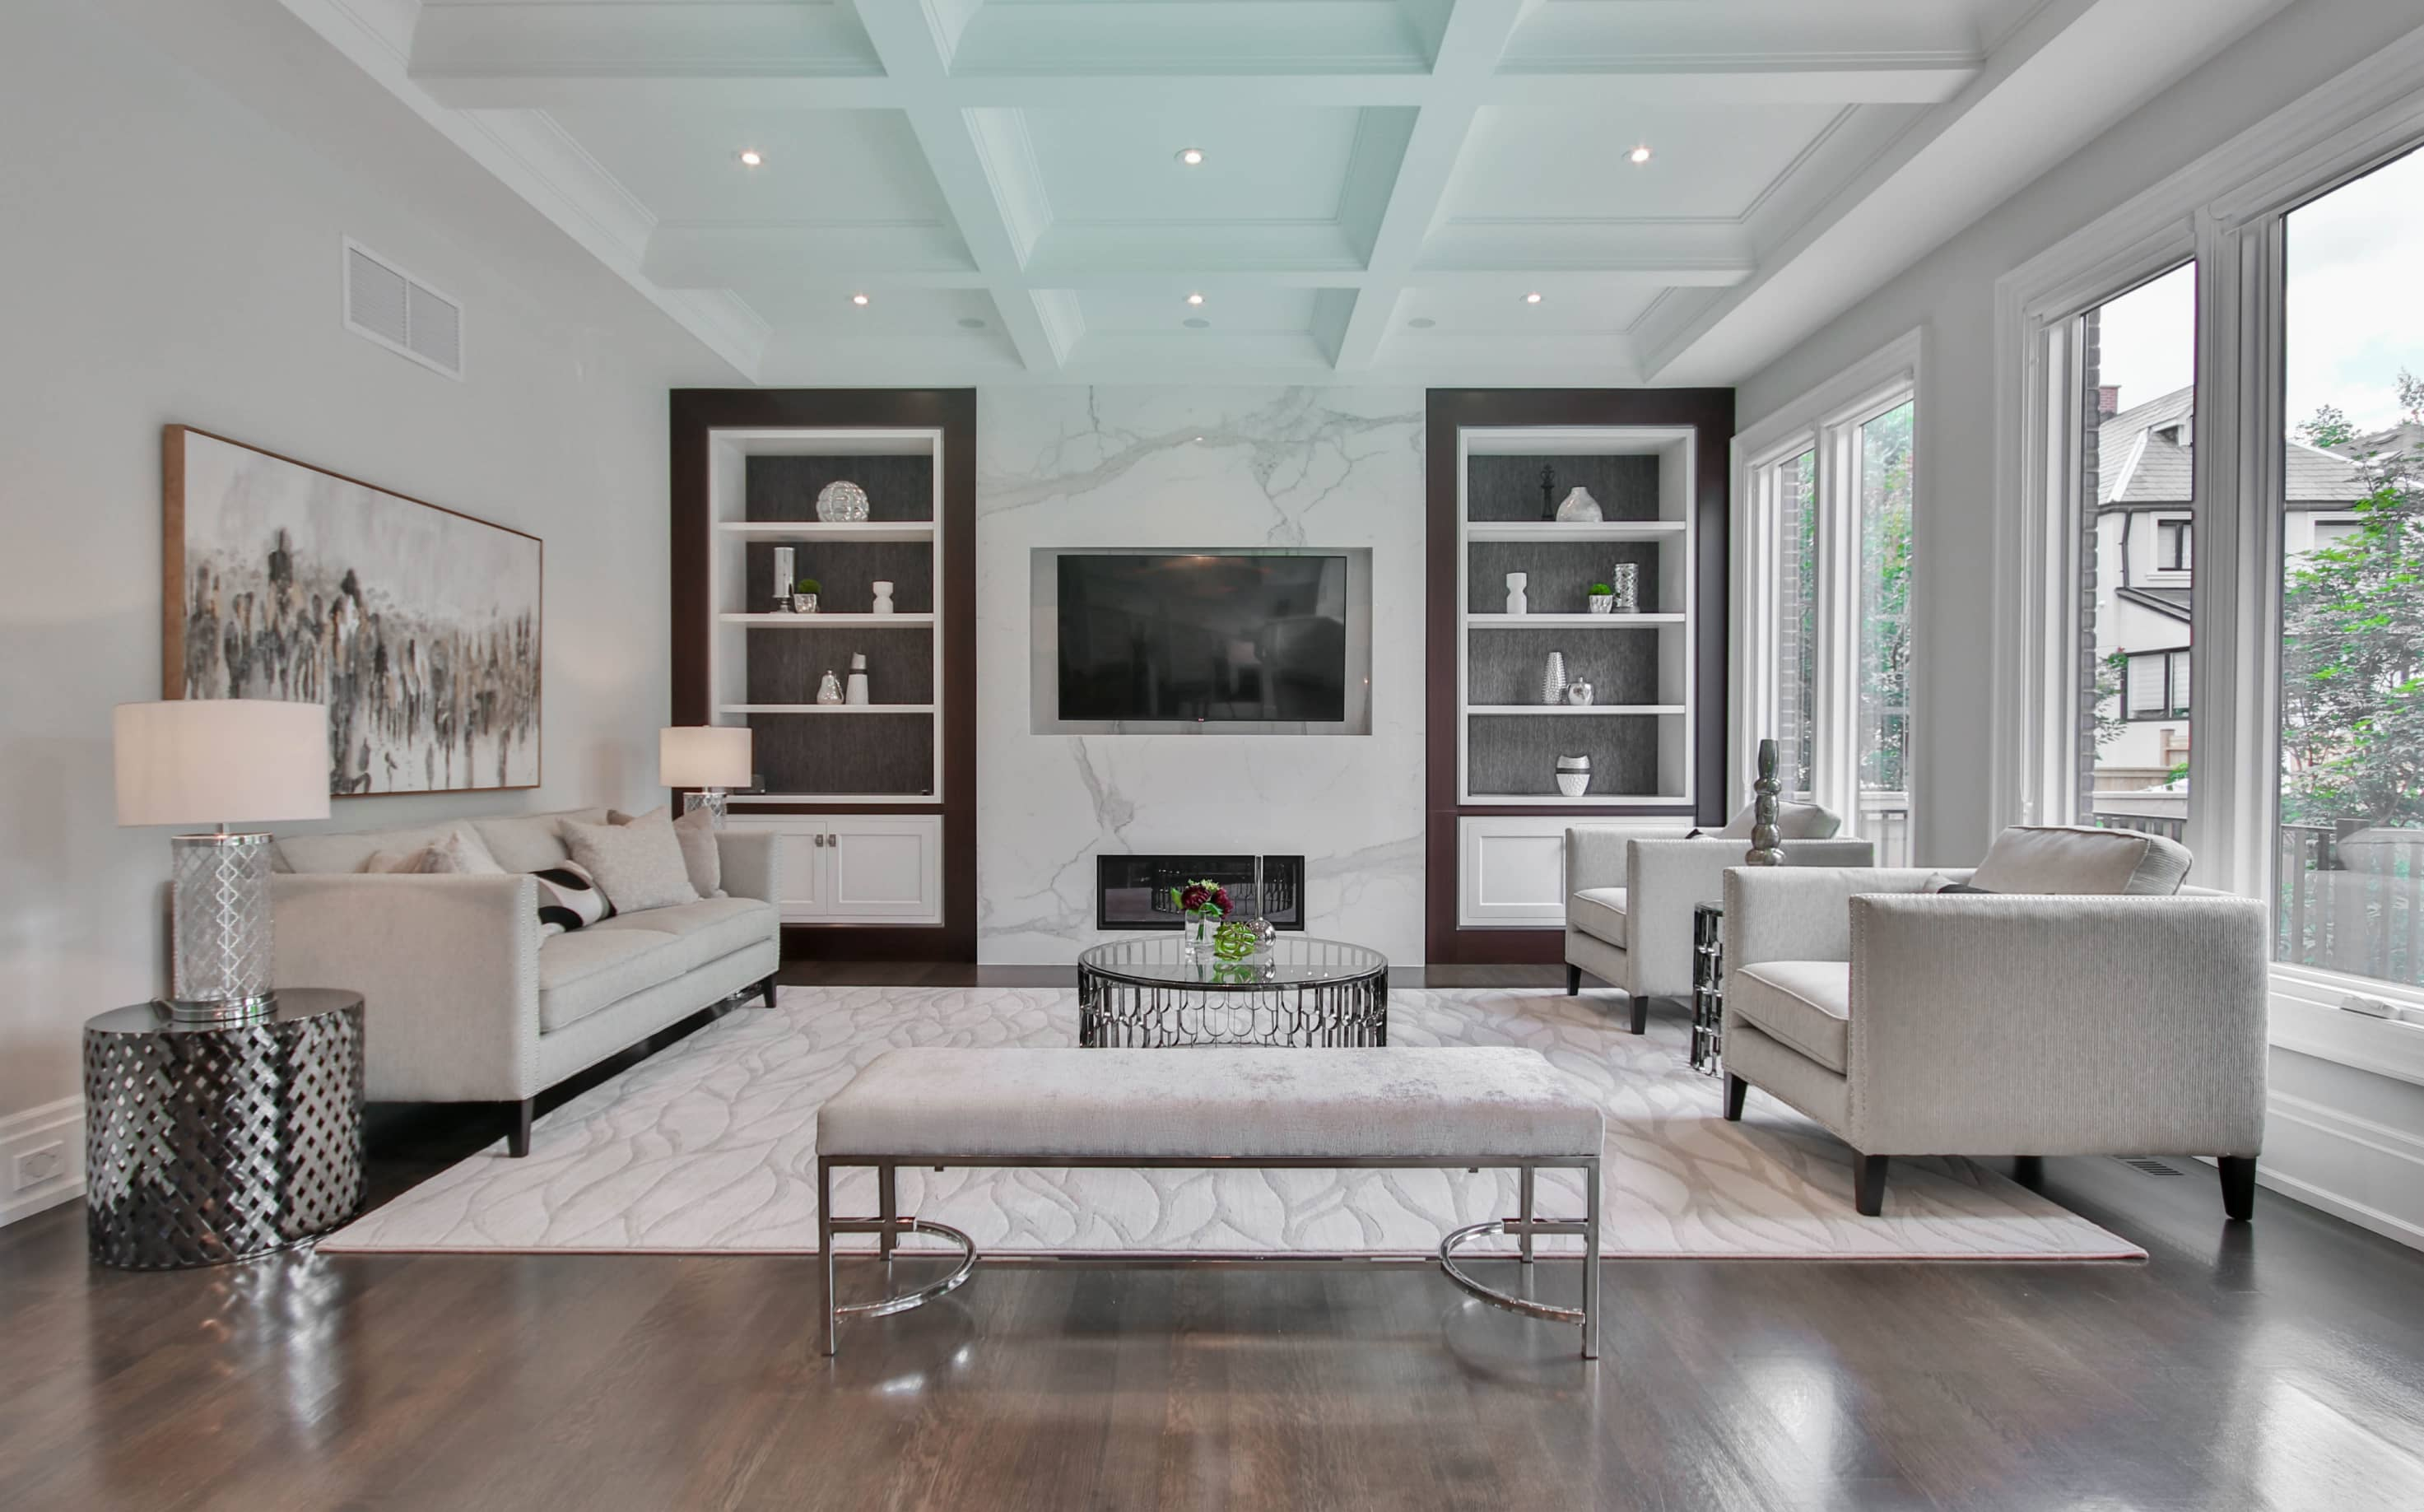 Large white living room with couches, coffee table and bookshelves